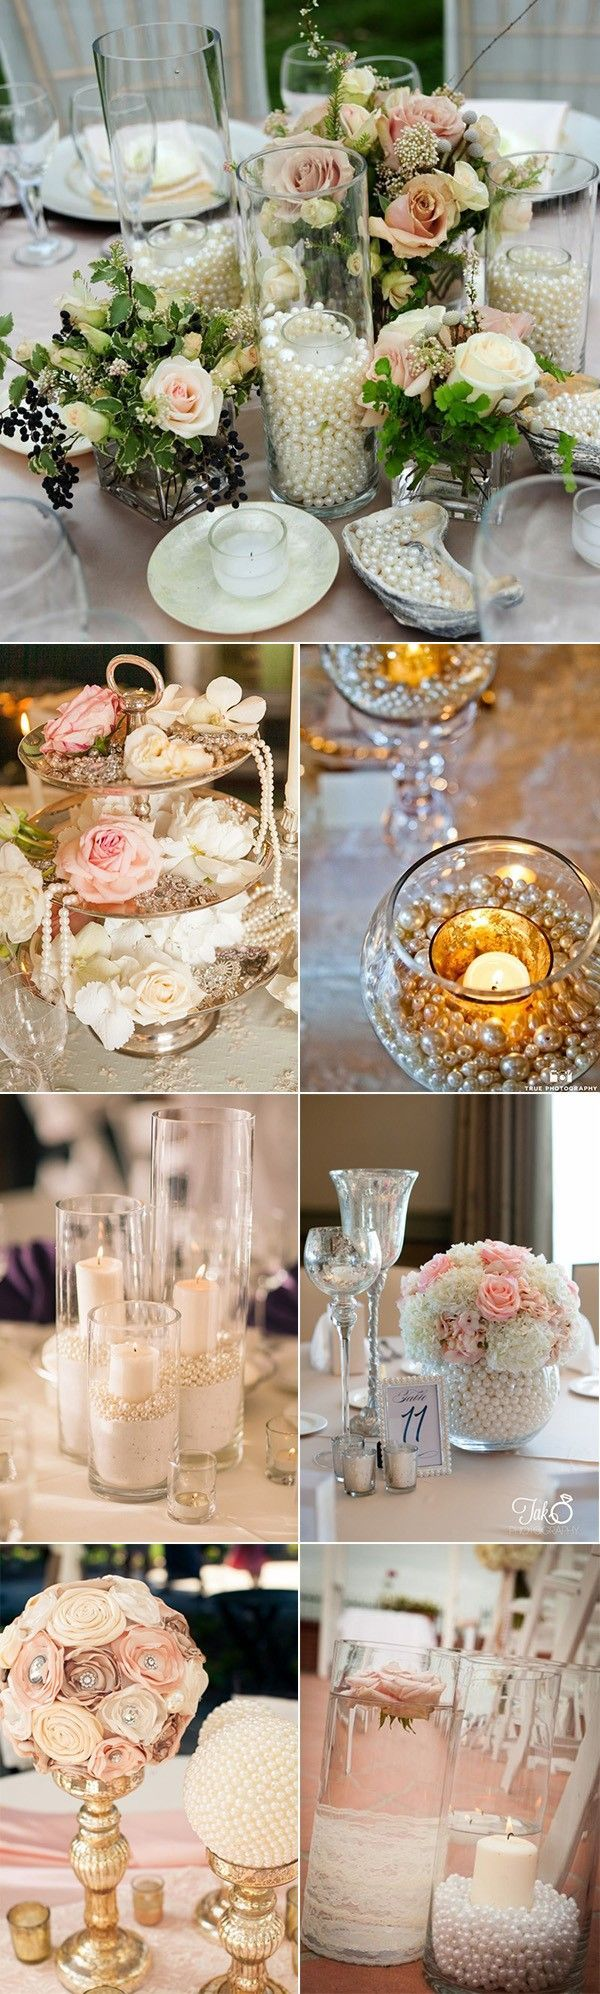 3354 Best Ideas For The Wedding Reception Images On Pinterest